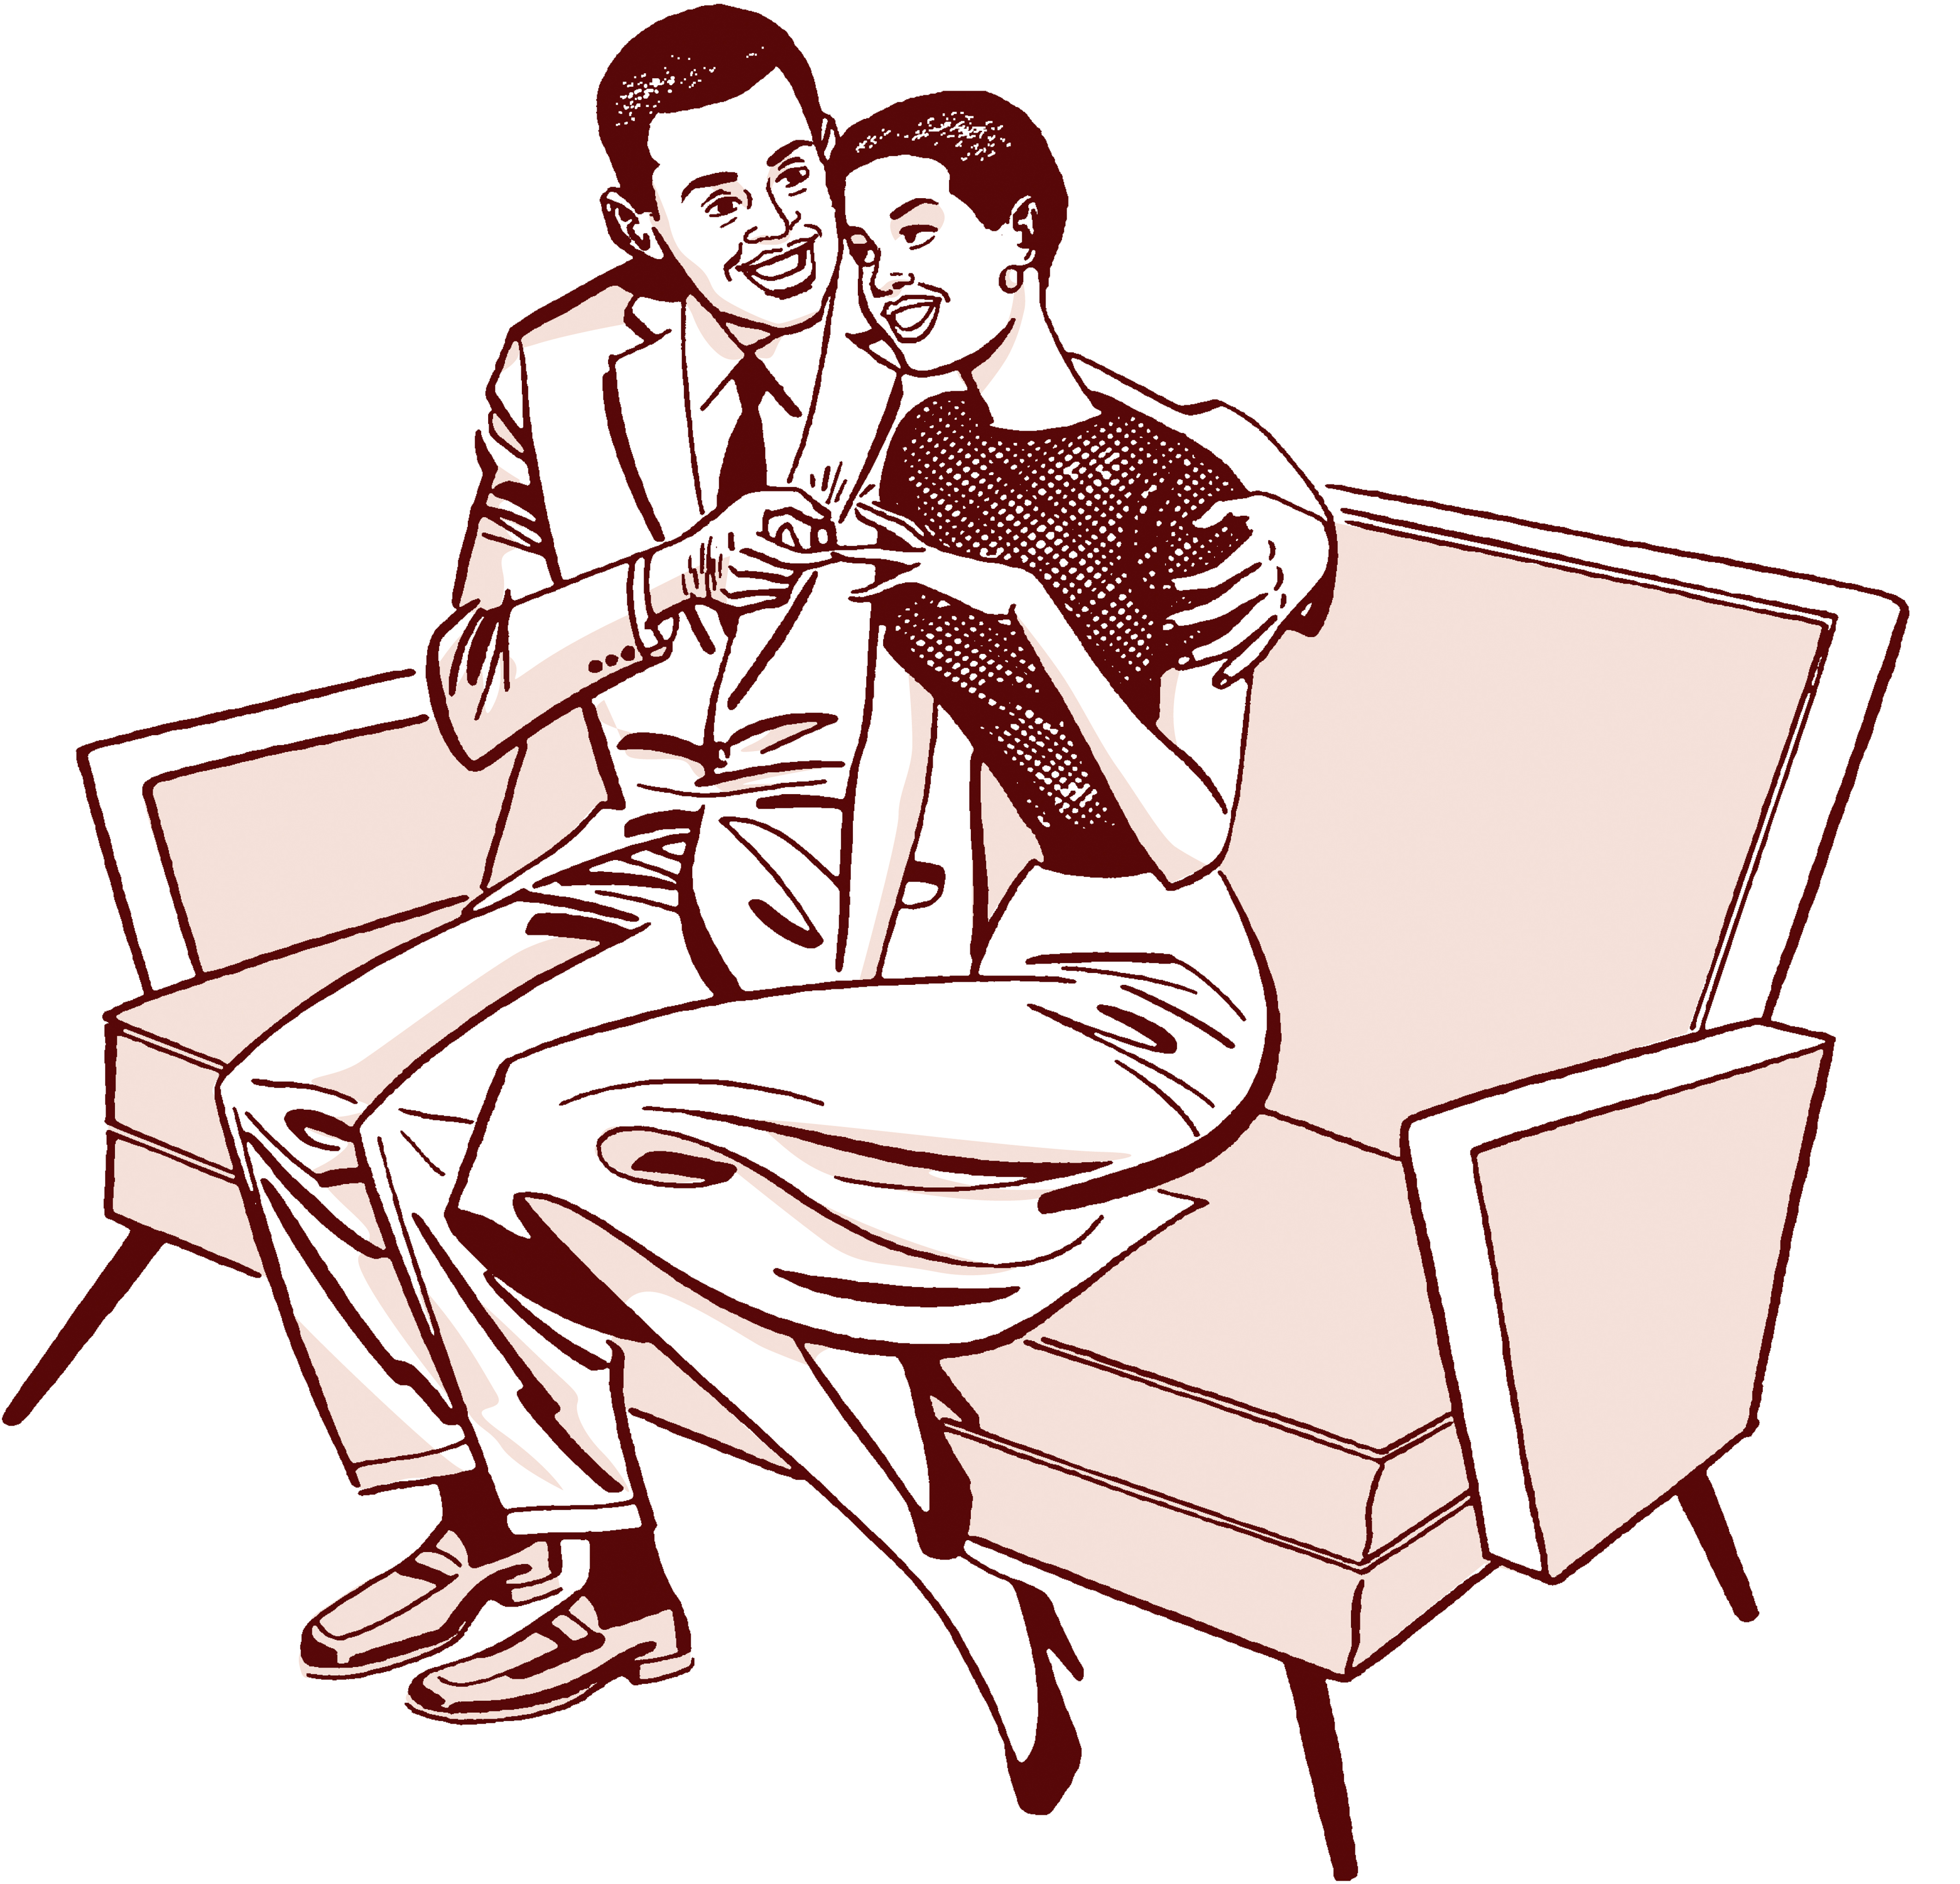 Black couple on couch getting engaged